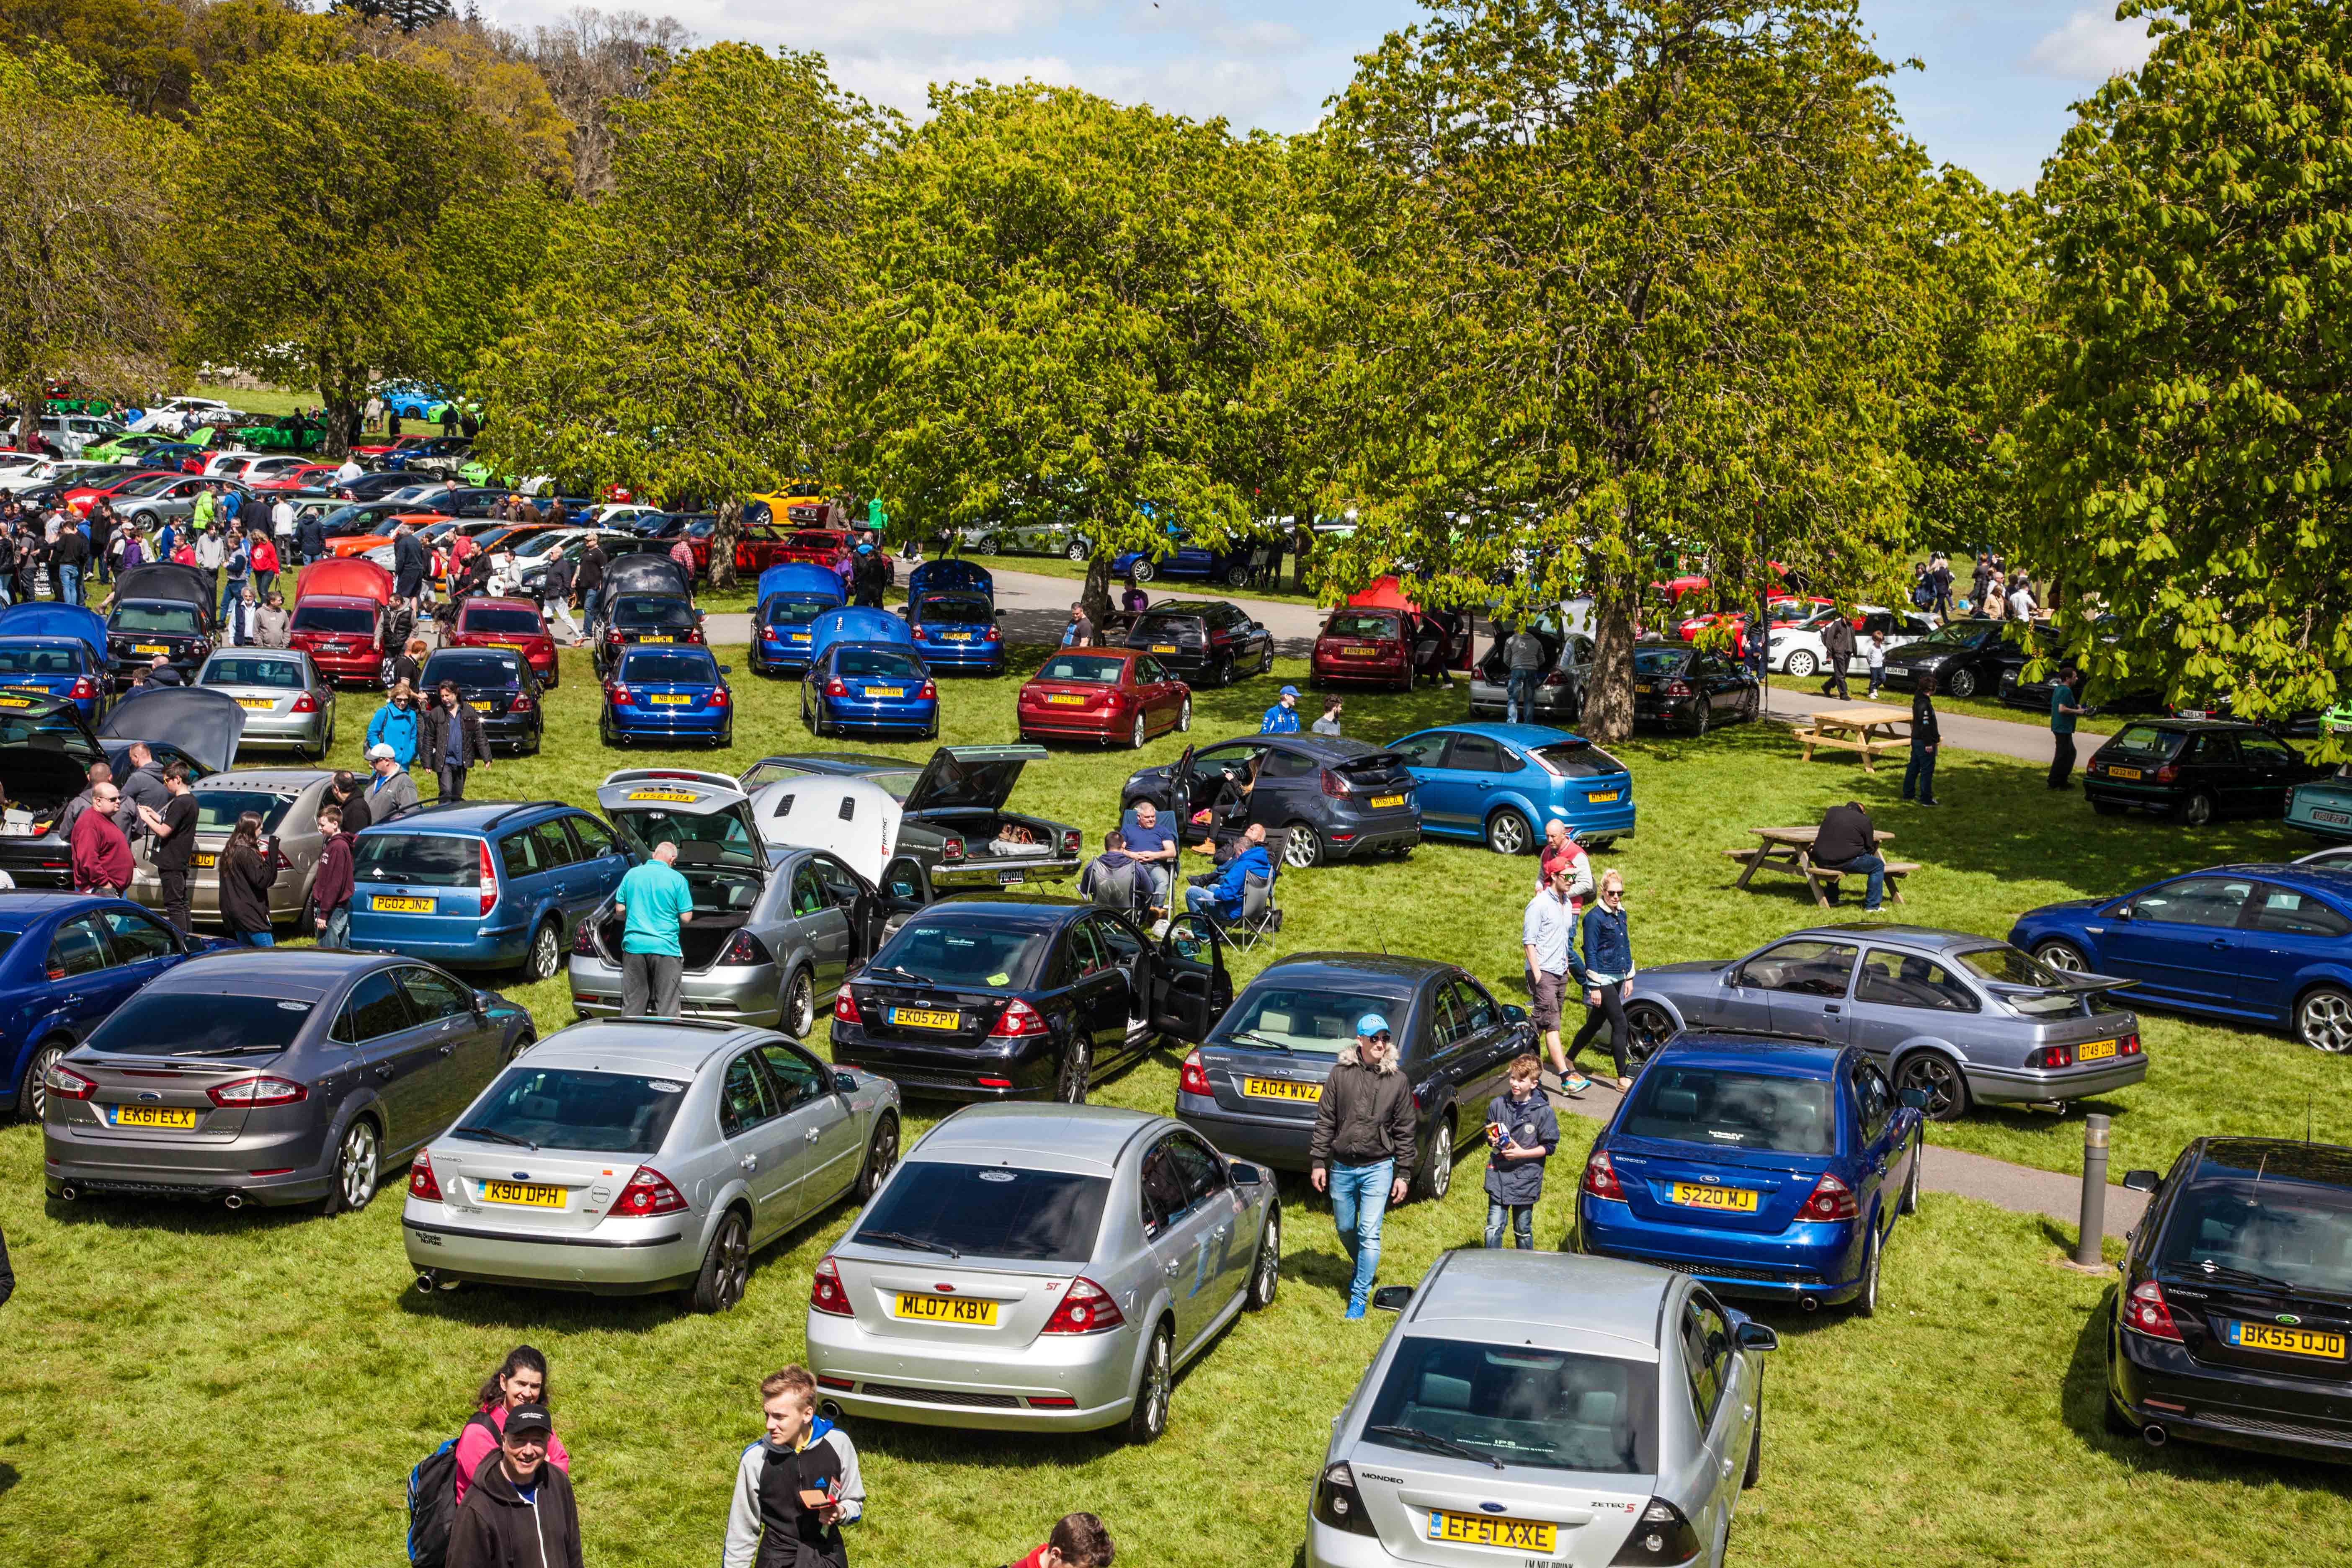 Over 1,300 Fords at Simply Ford Beaulieu